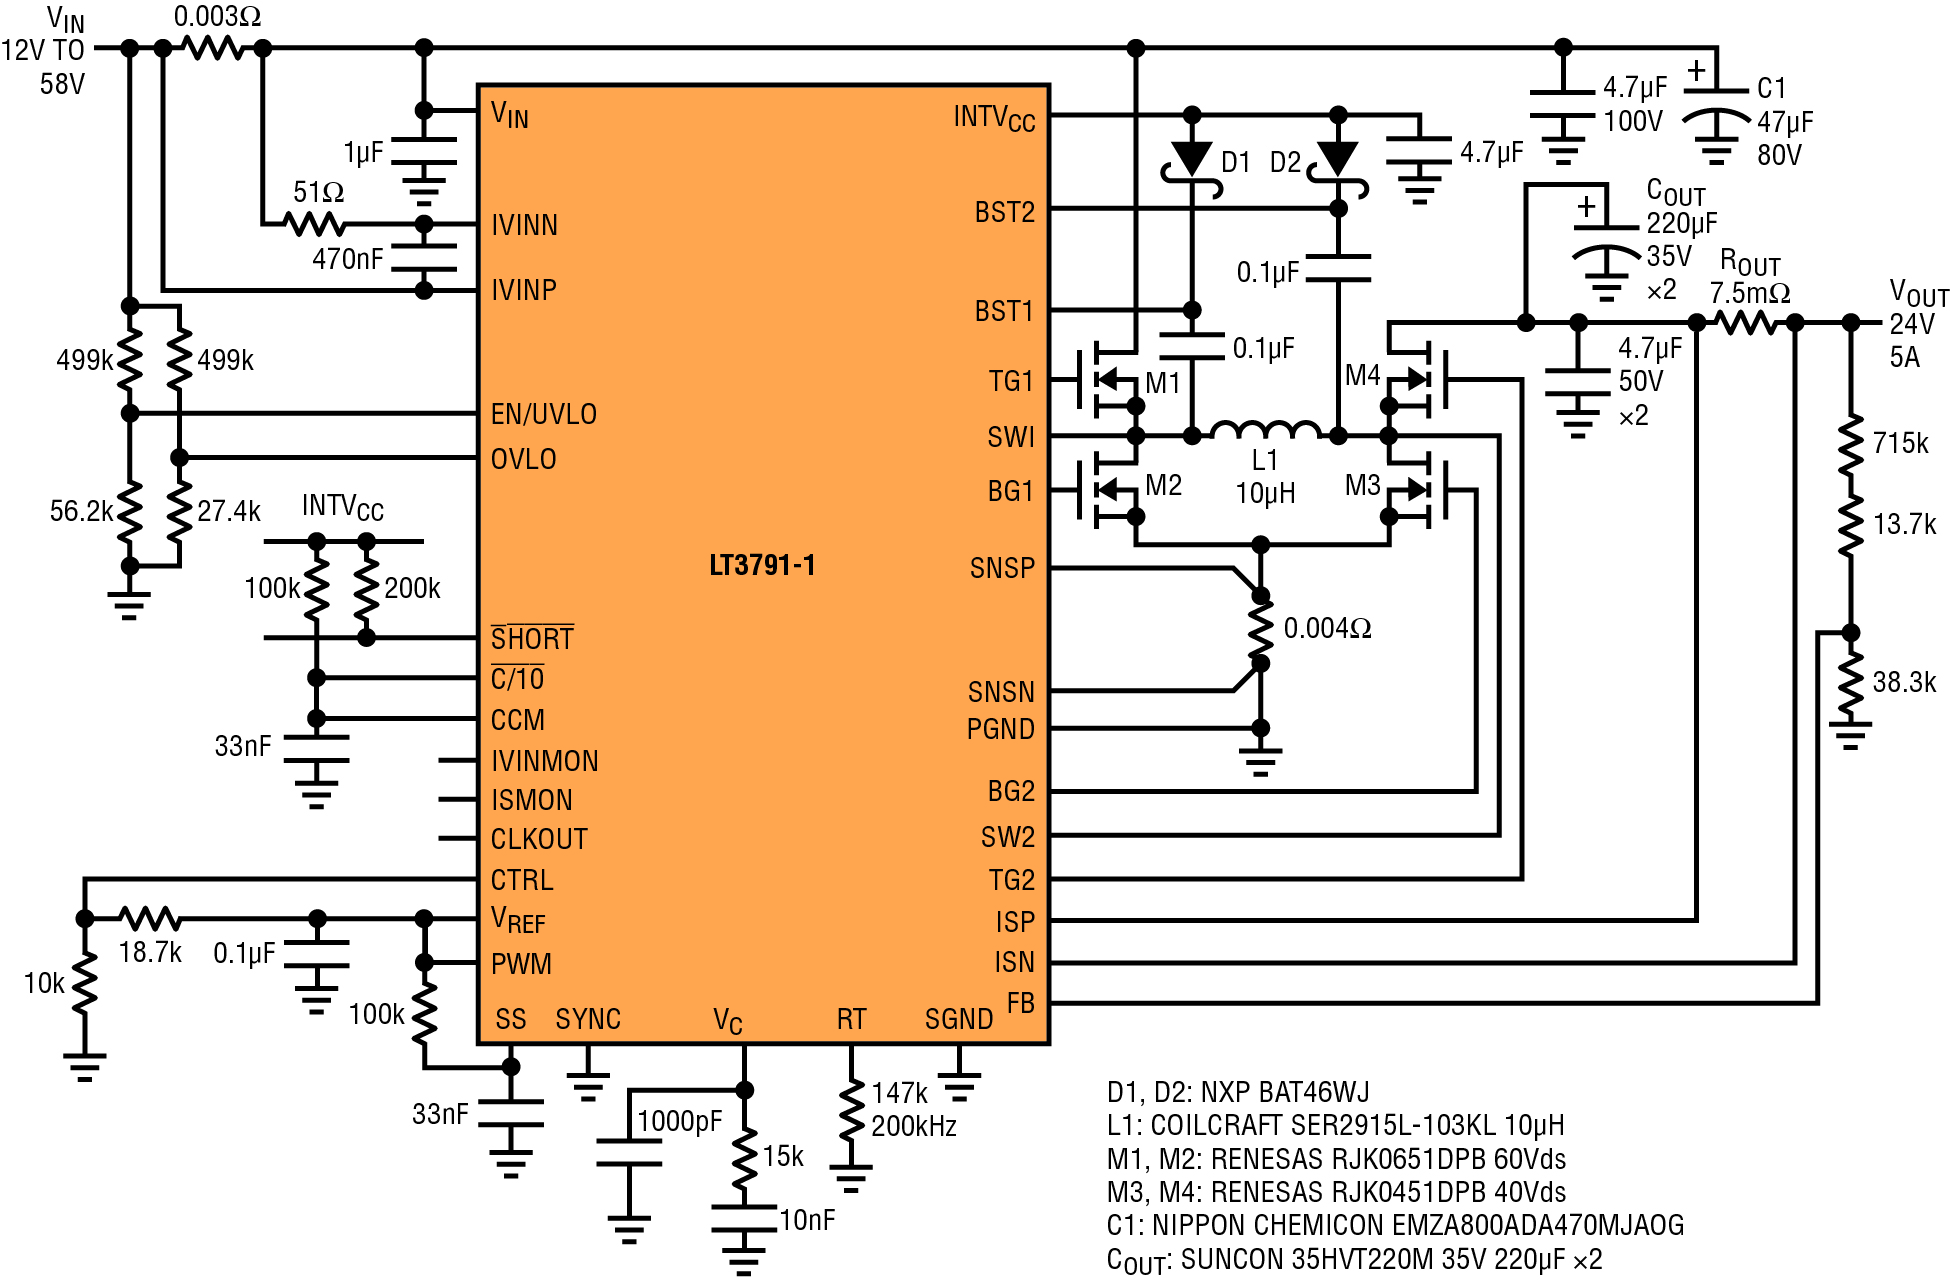 120w 24v 5a output buck boost voltage regulator [ 1950 x 1284 Pixel ]